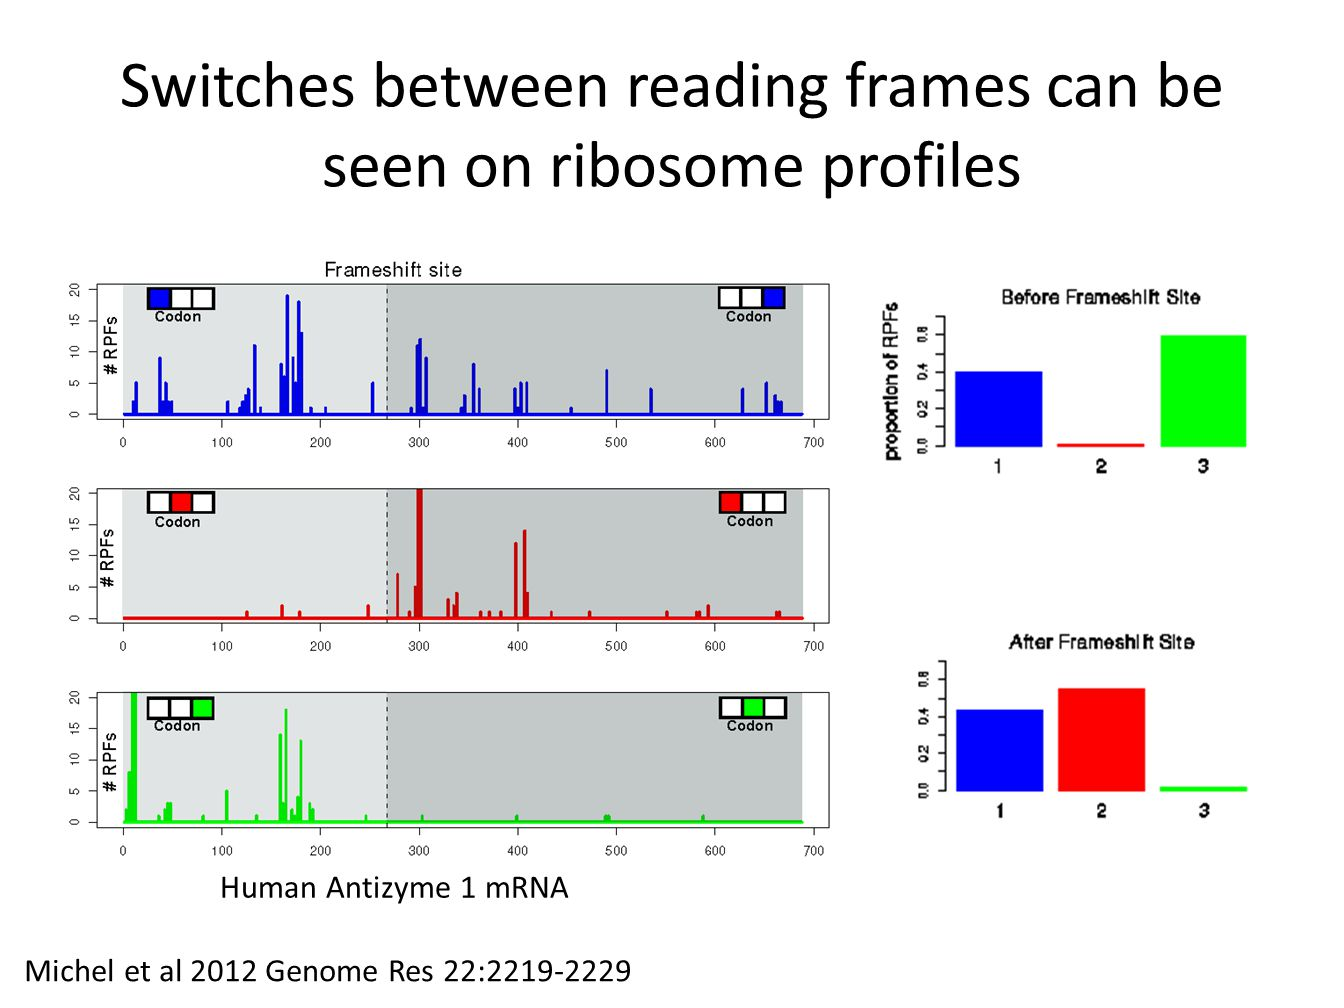 Switches between reading frames can be seen on ribosome profiles